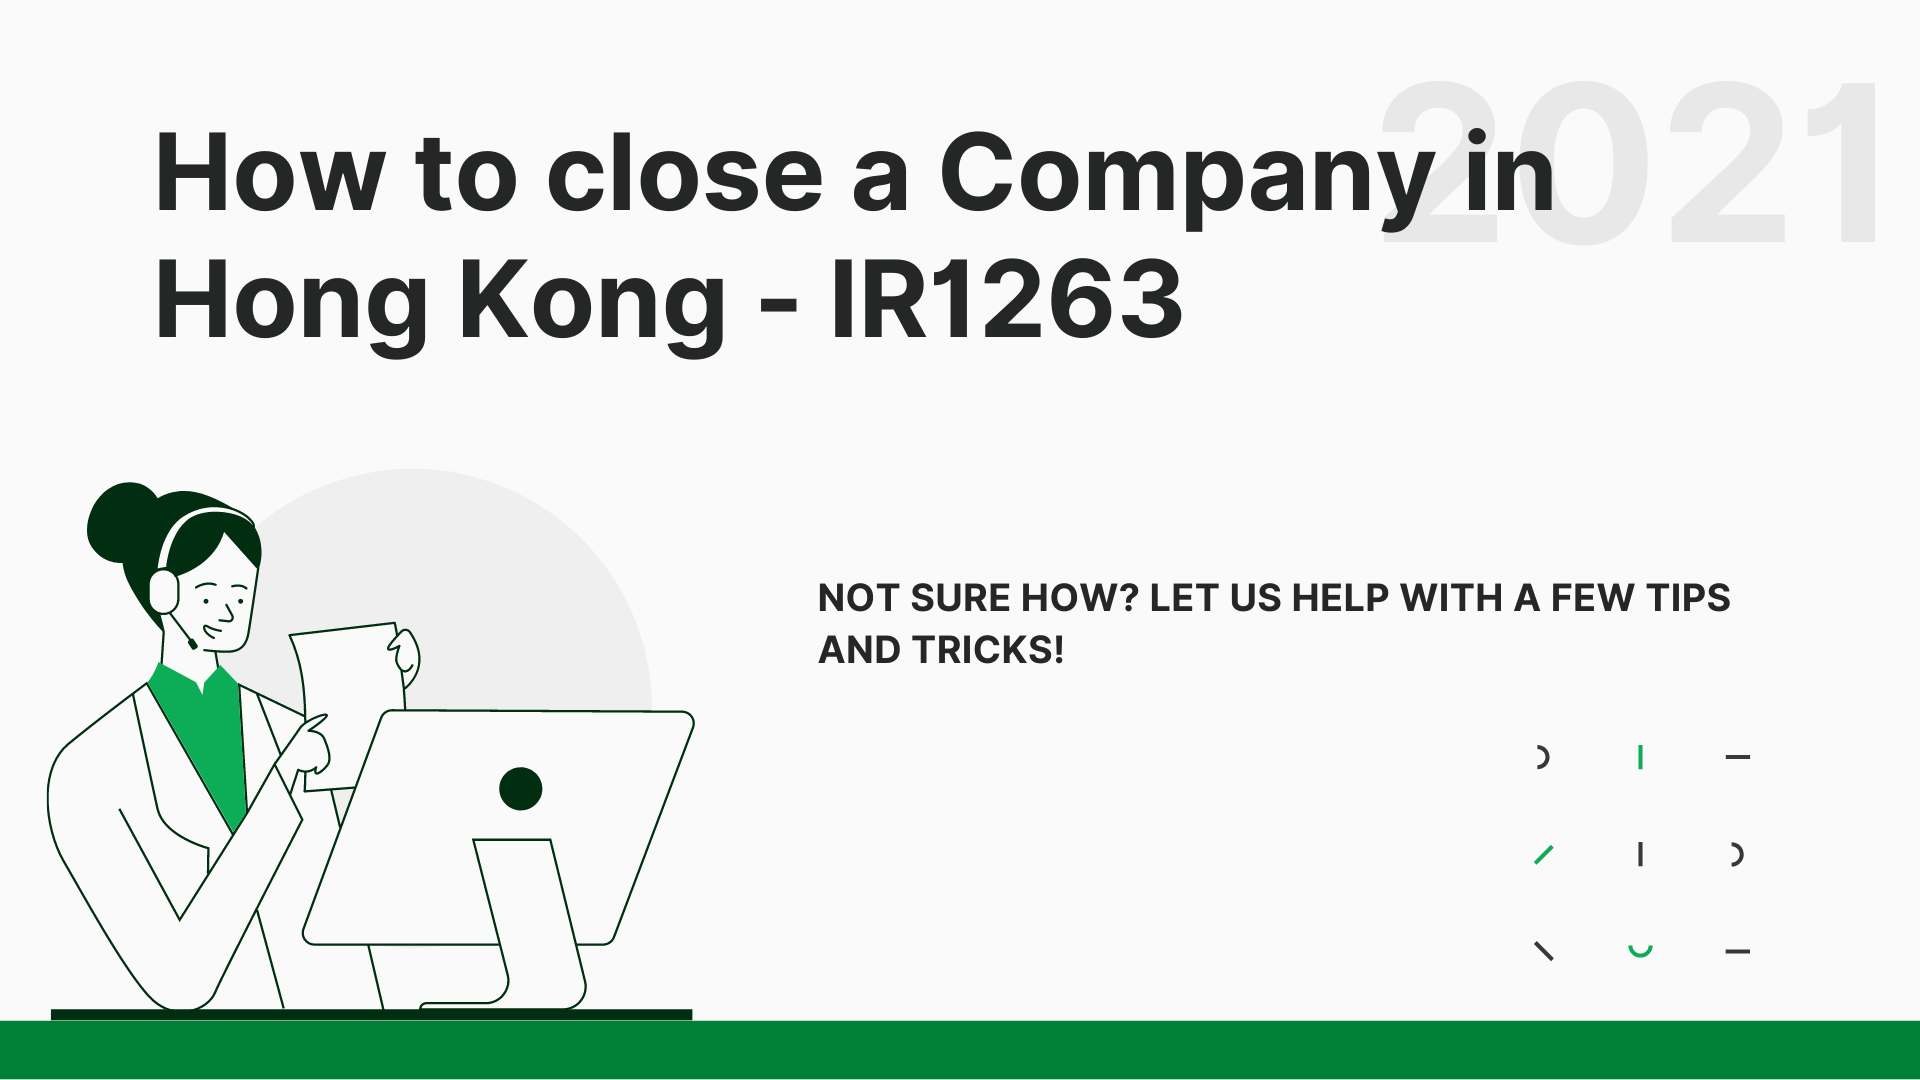 IR1263 - How to close a company in Hong Kong